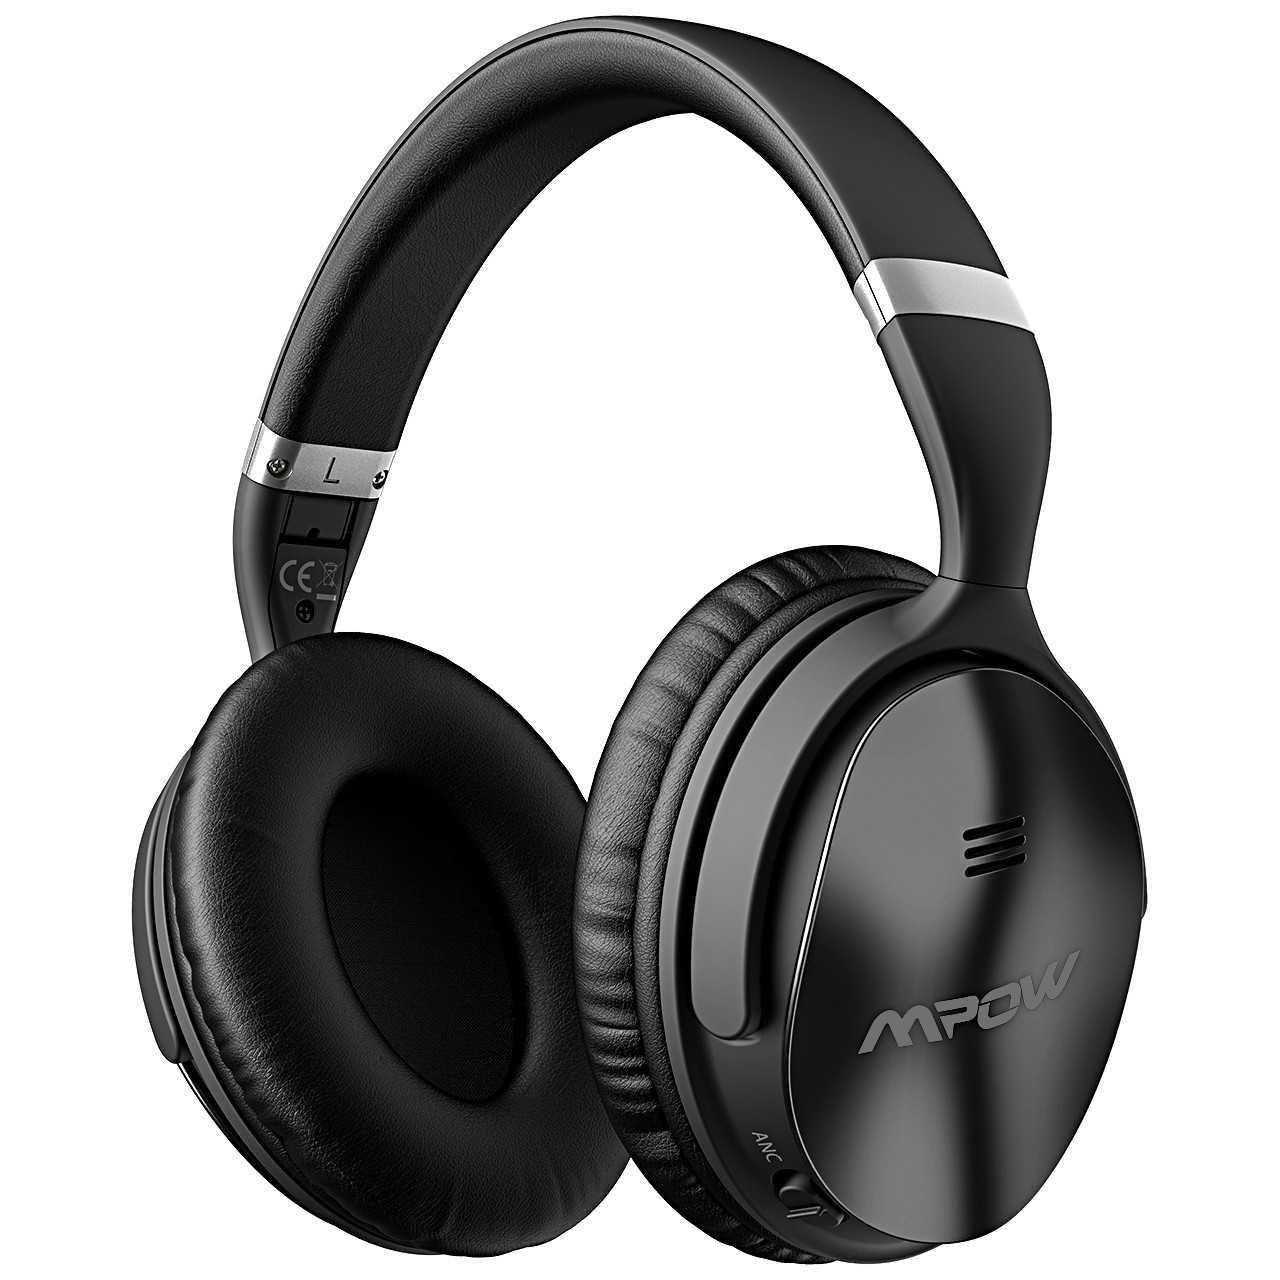 mpow H5 noise cancelling headphones